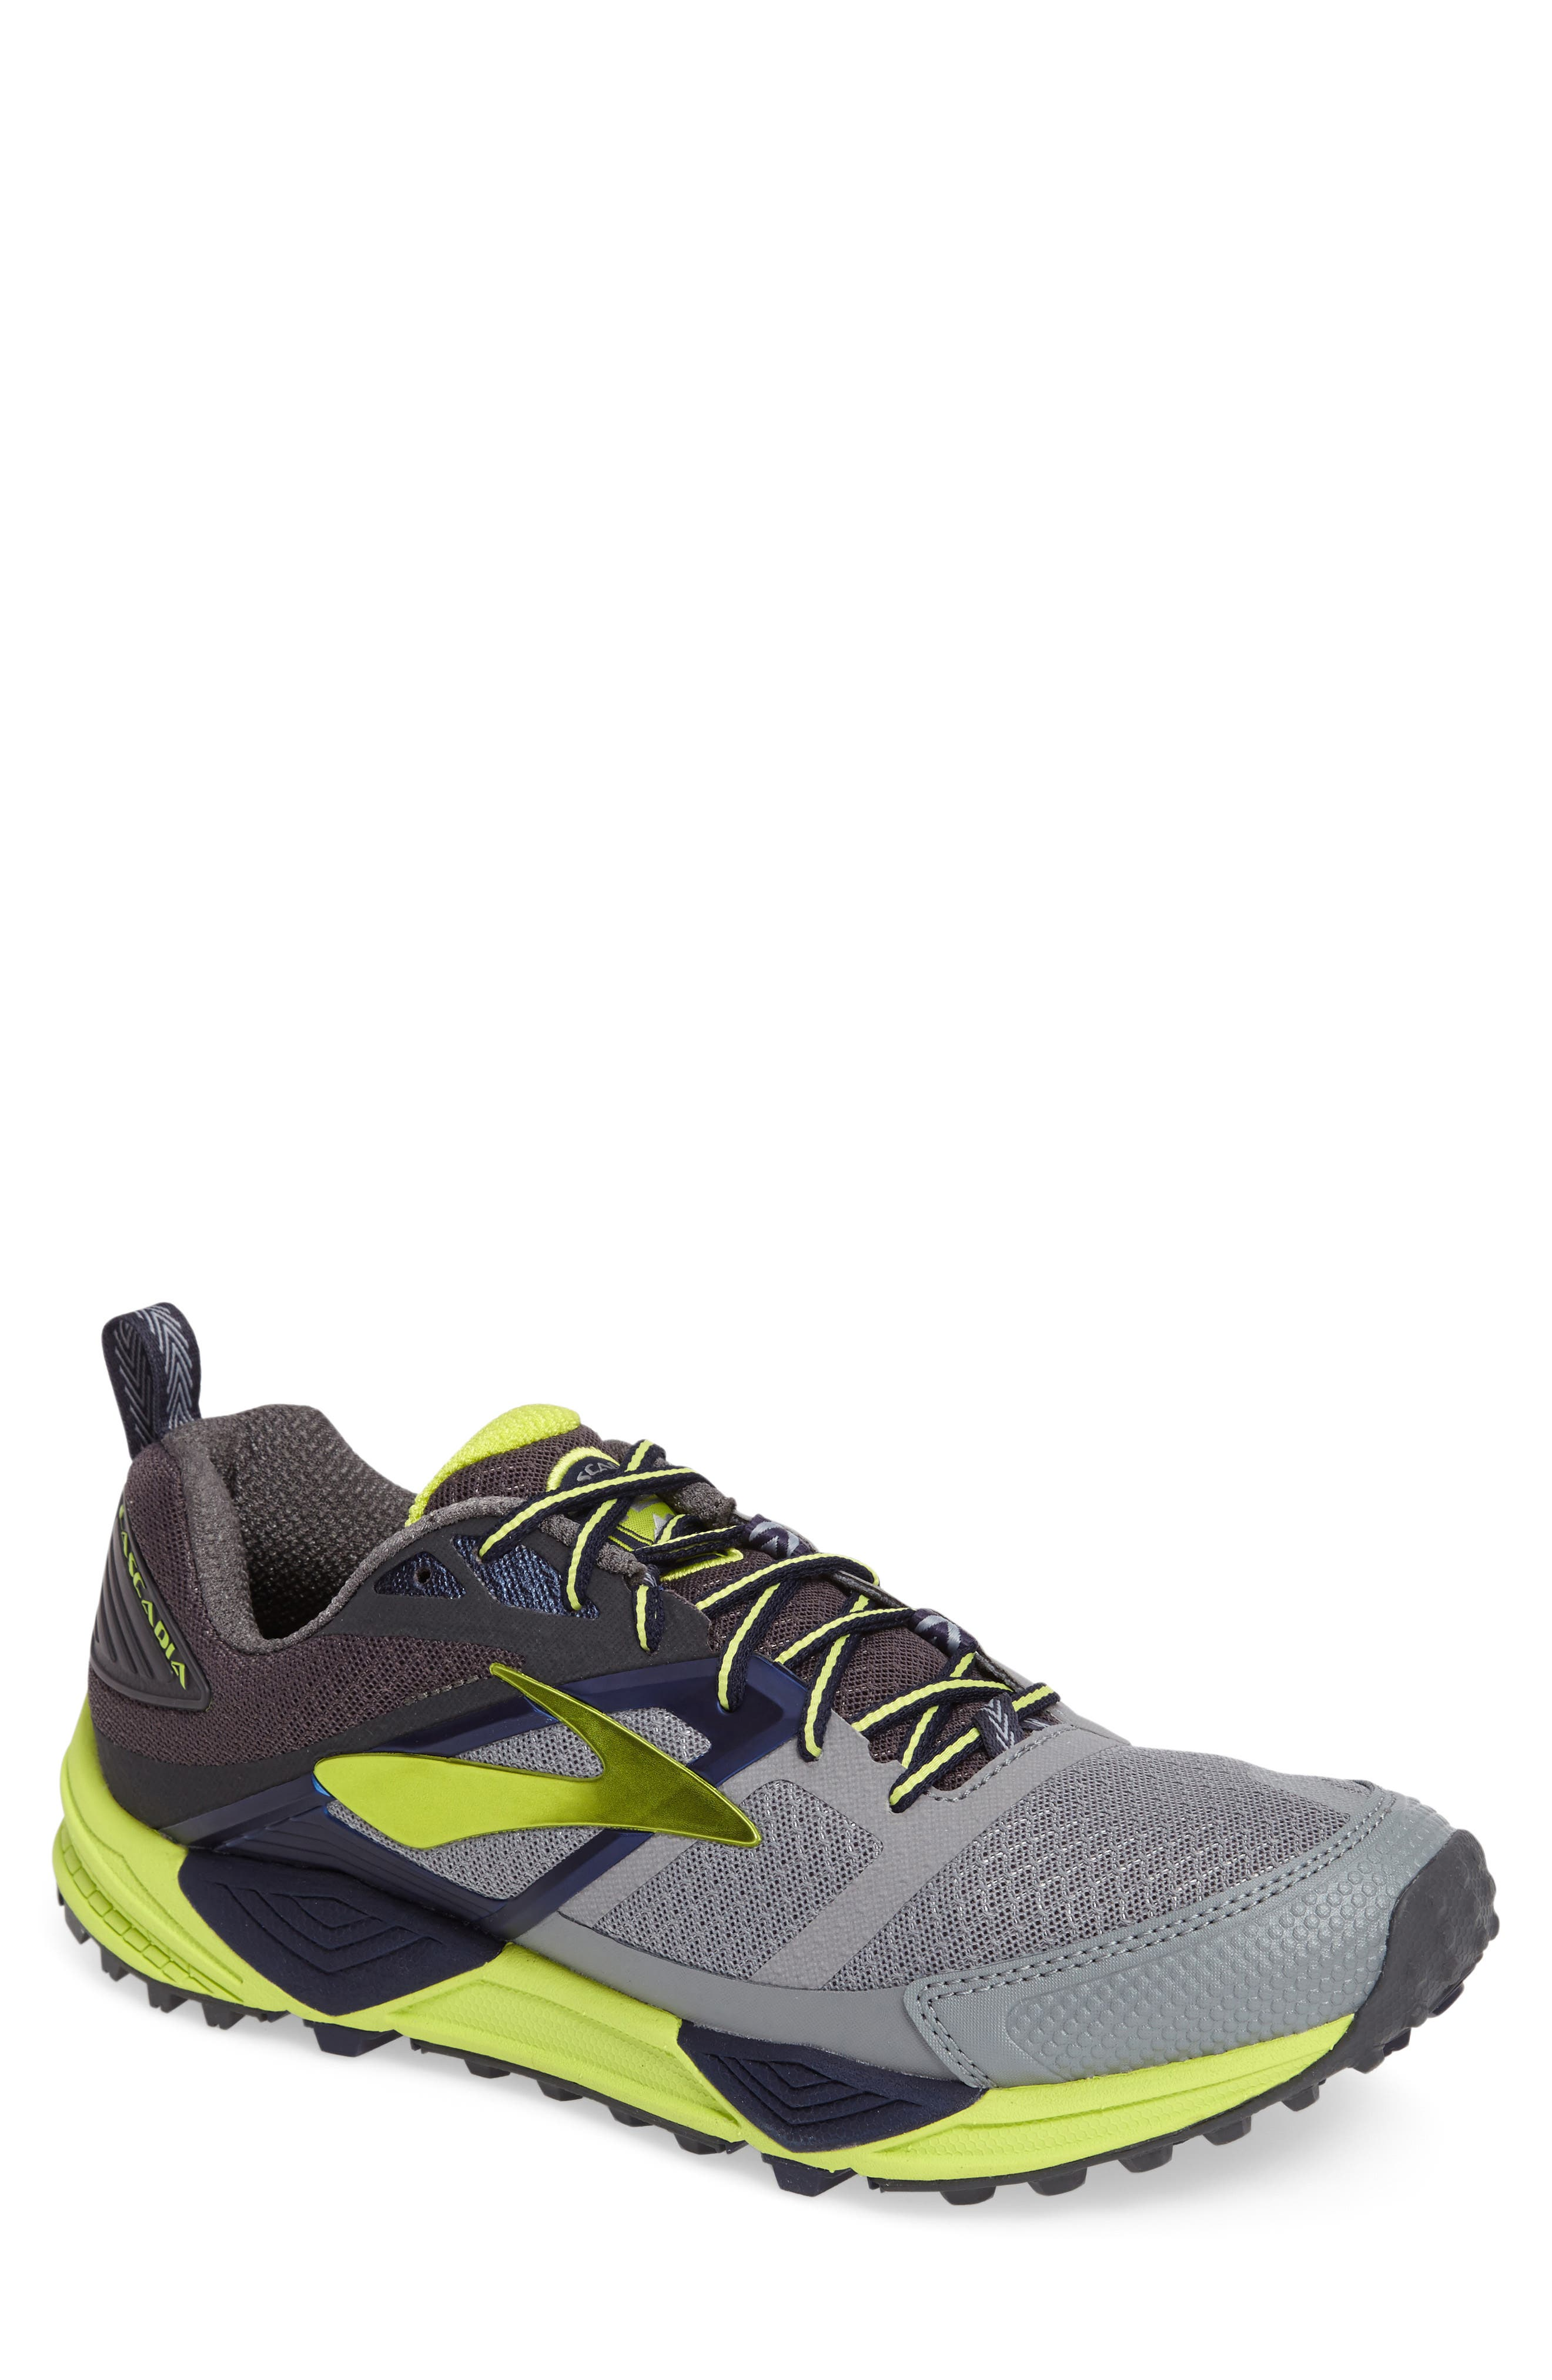 Cascadia 12 Trail Running Shoe,                         Main,                         color, 076